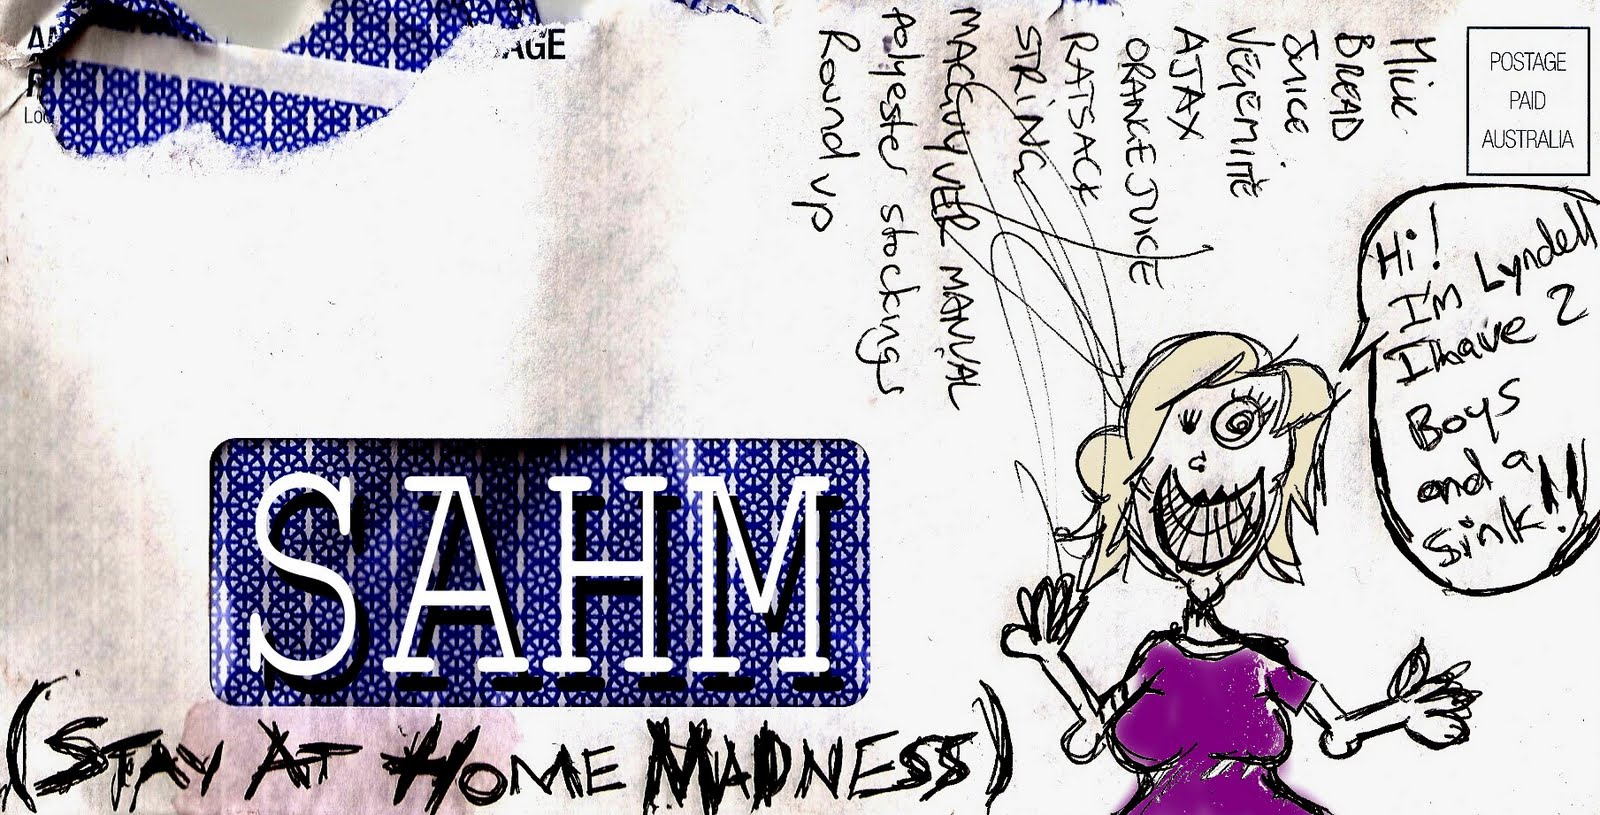 SAHM (Stay At Home Madness)